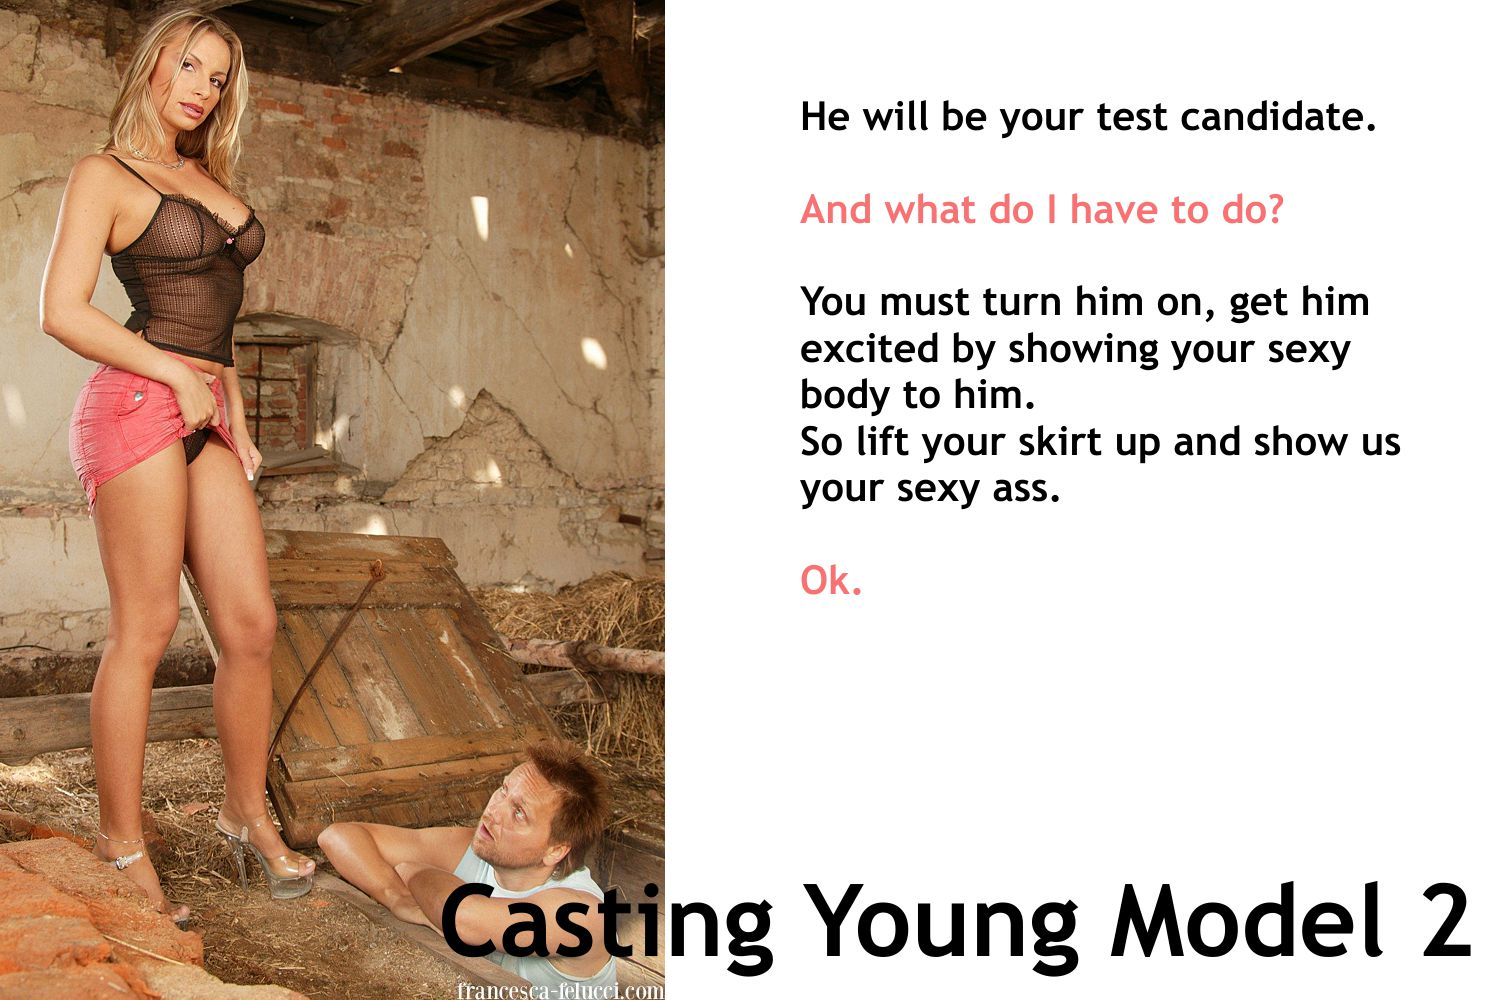 casting_young_model_2_003